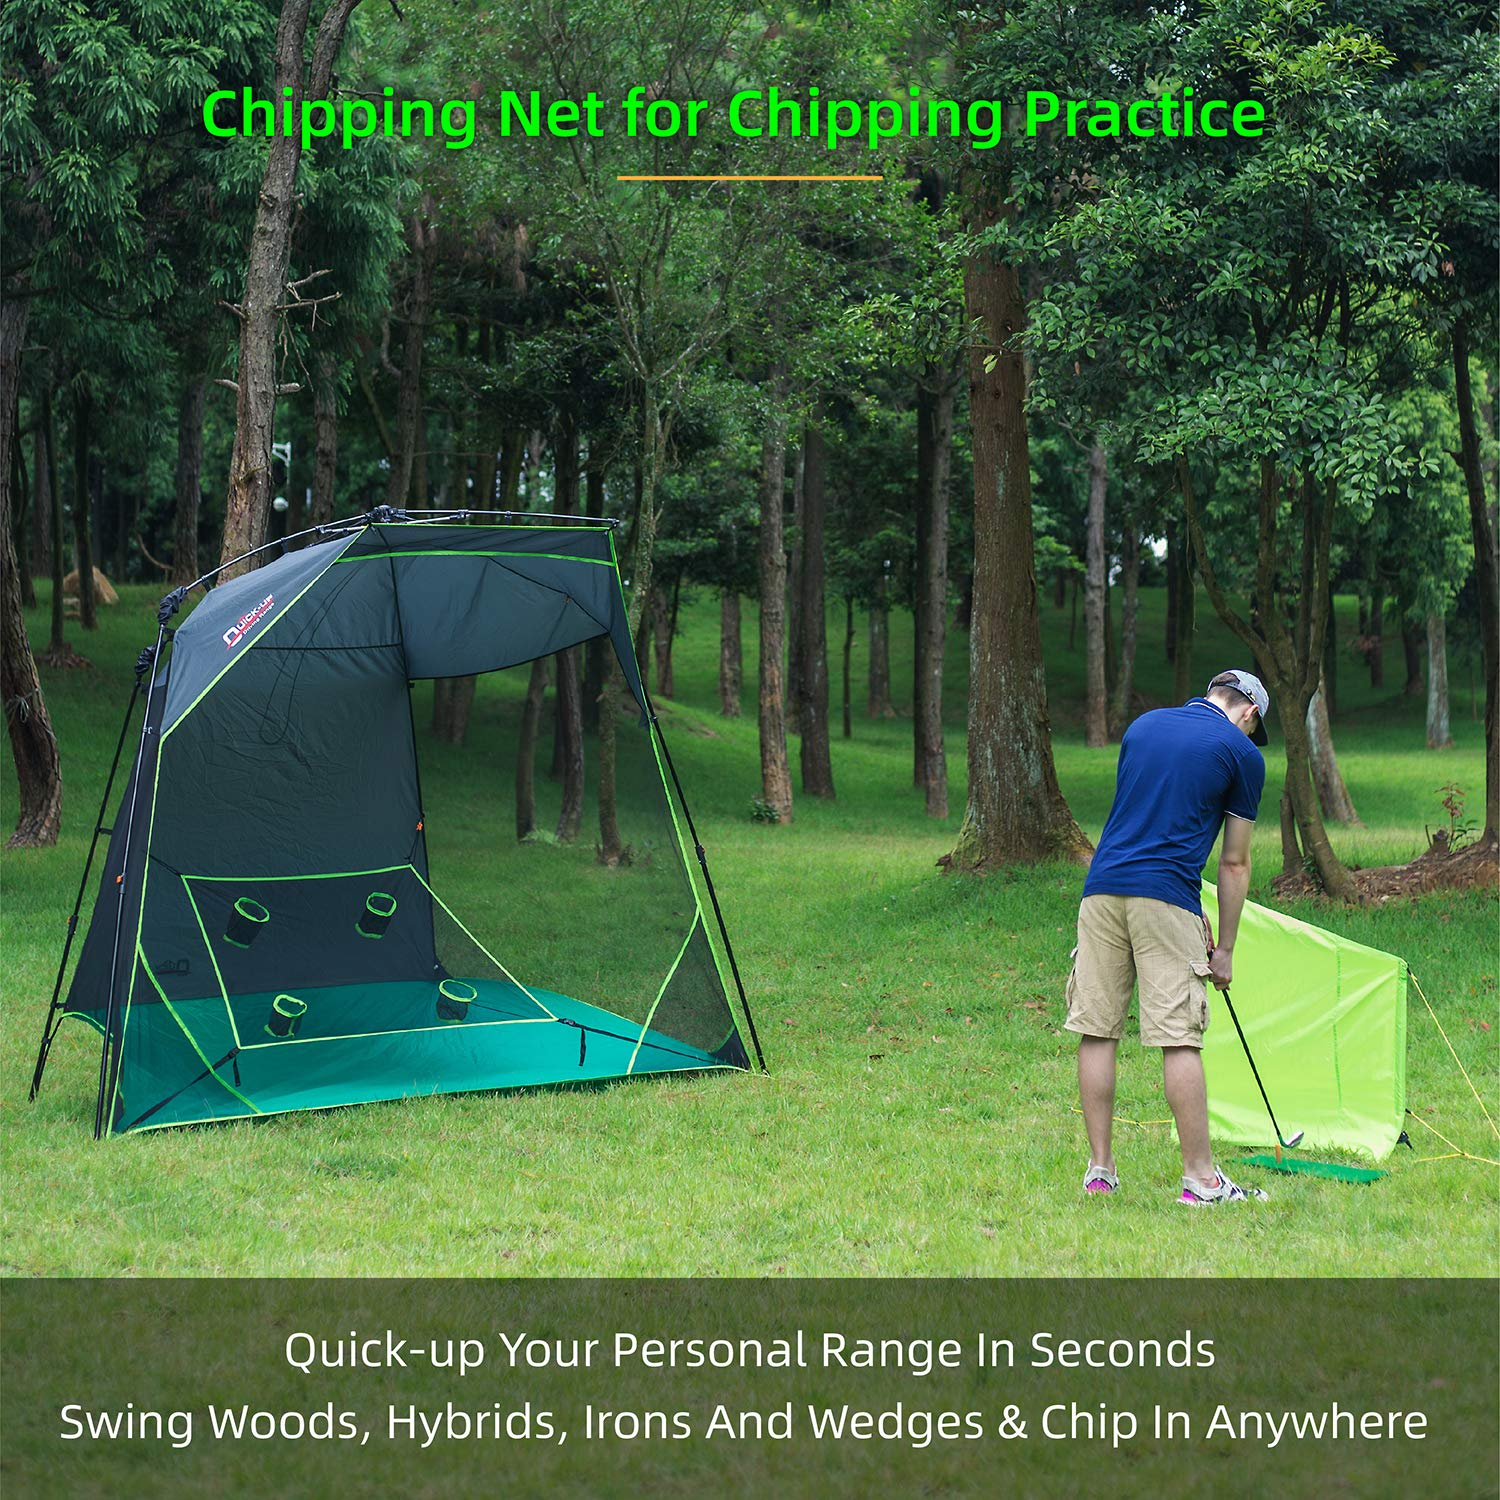 Buy Quick Up Golf Practice Net Tents Hitting Chipping Nets Easy Set Up For High Shot Swing Wedges All In One Golf Training Aids For Testing Portable Driving Range For Indoor Outdoor 10 X 7 Ft